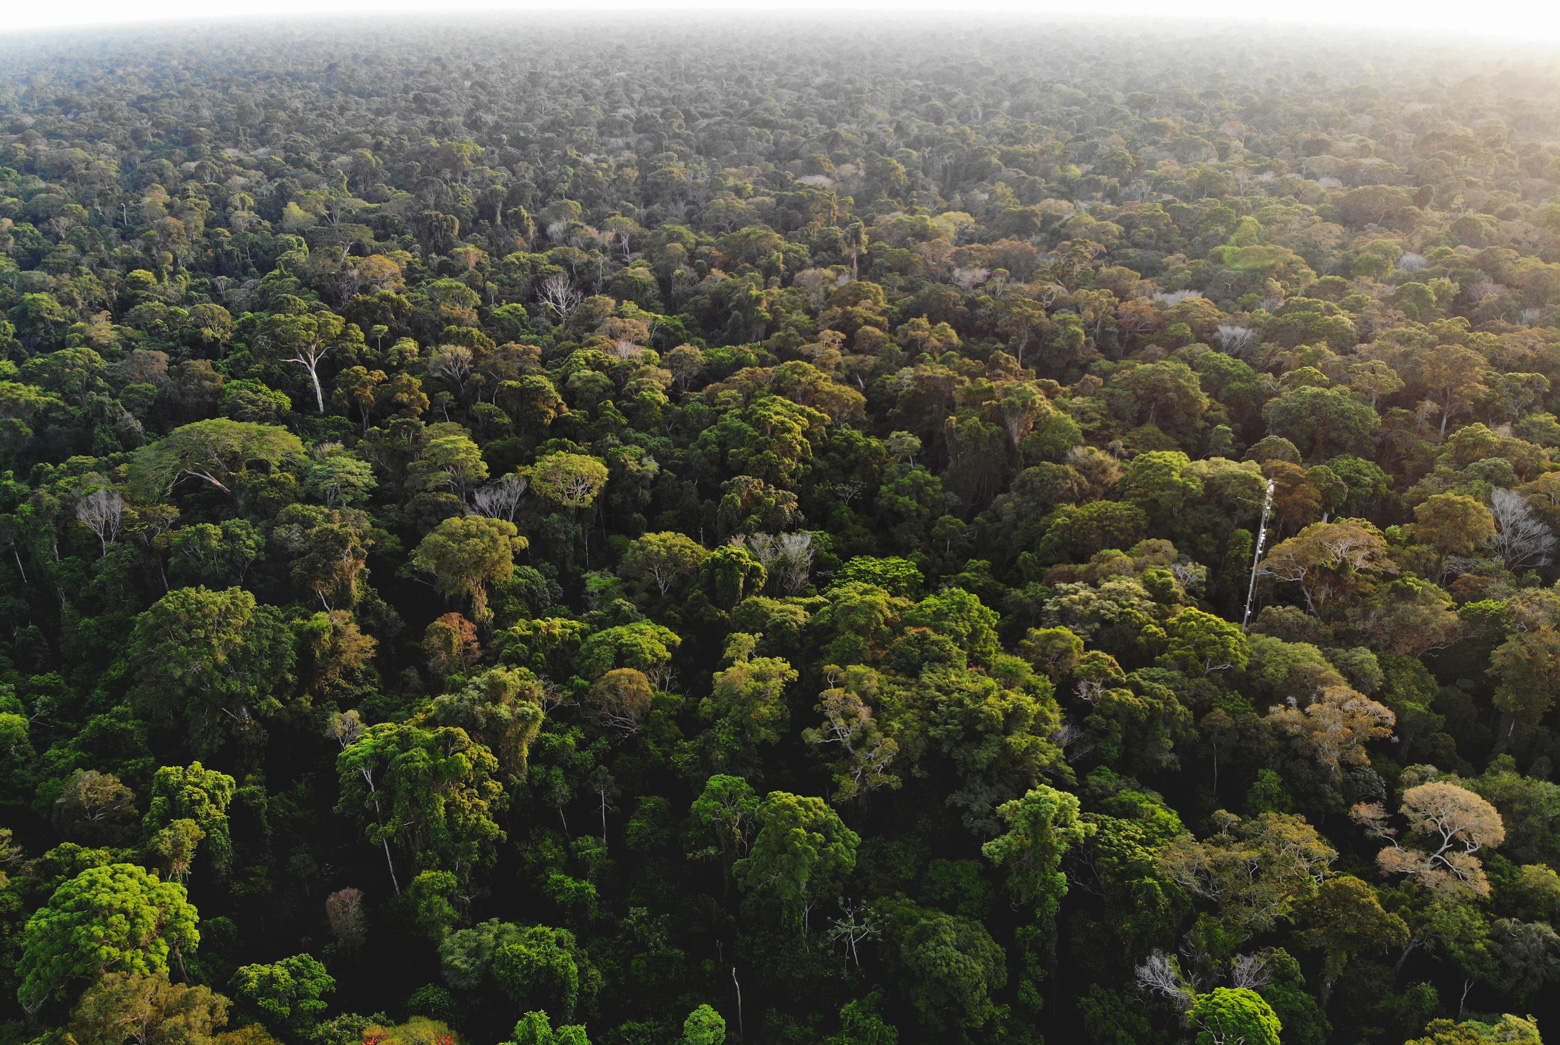 A view from overhead of the Amazon forest